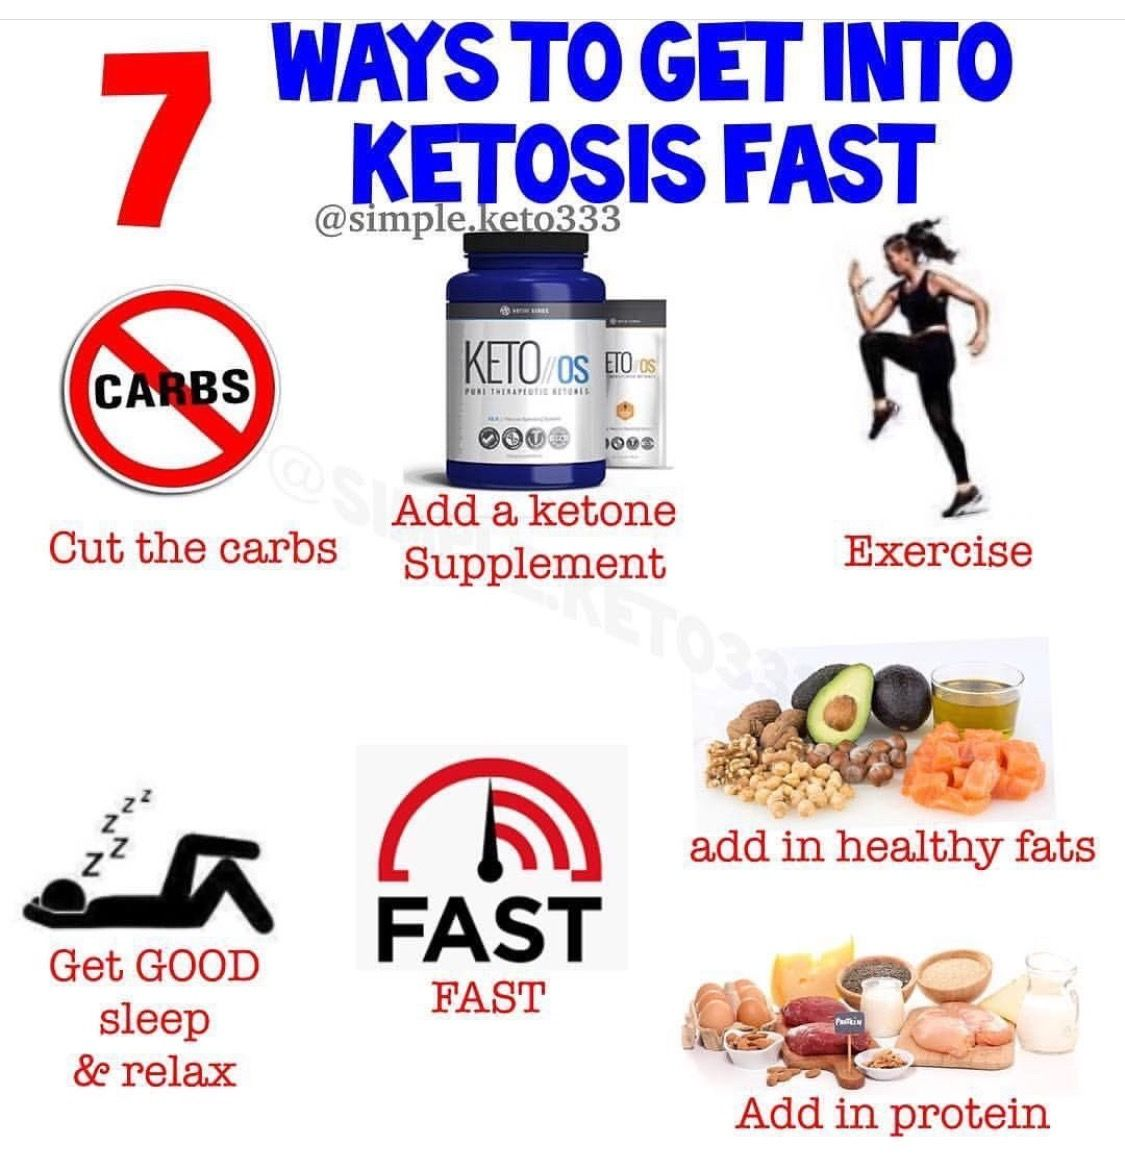 If you want to get into ketosis or back into ketosis after